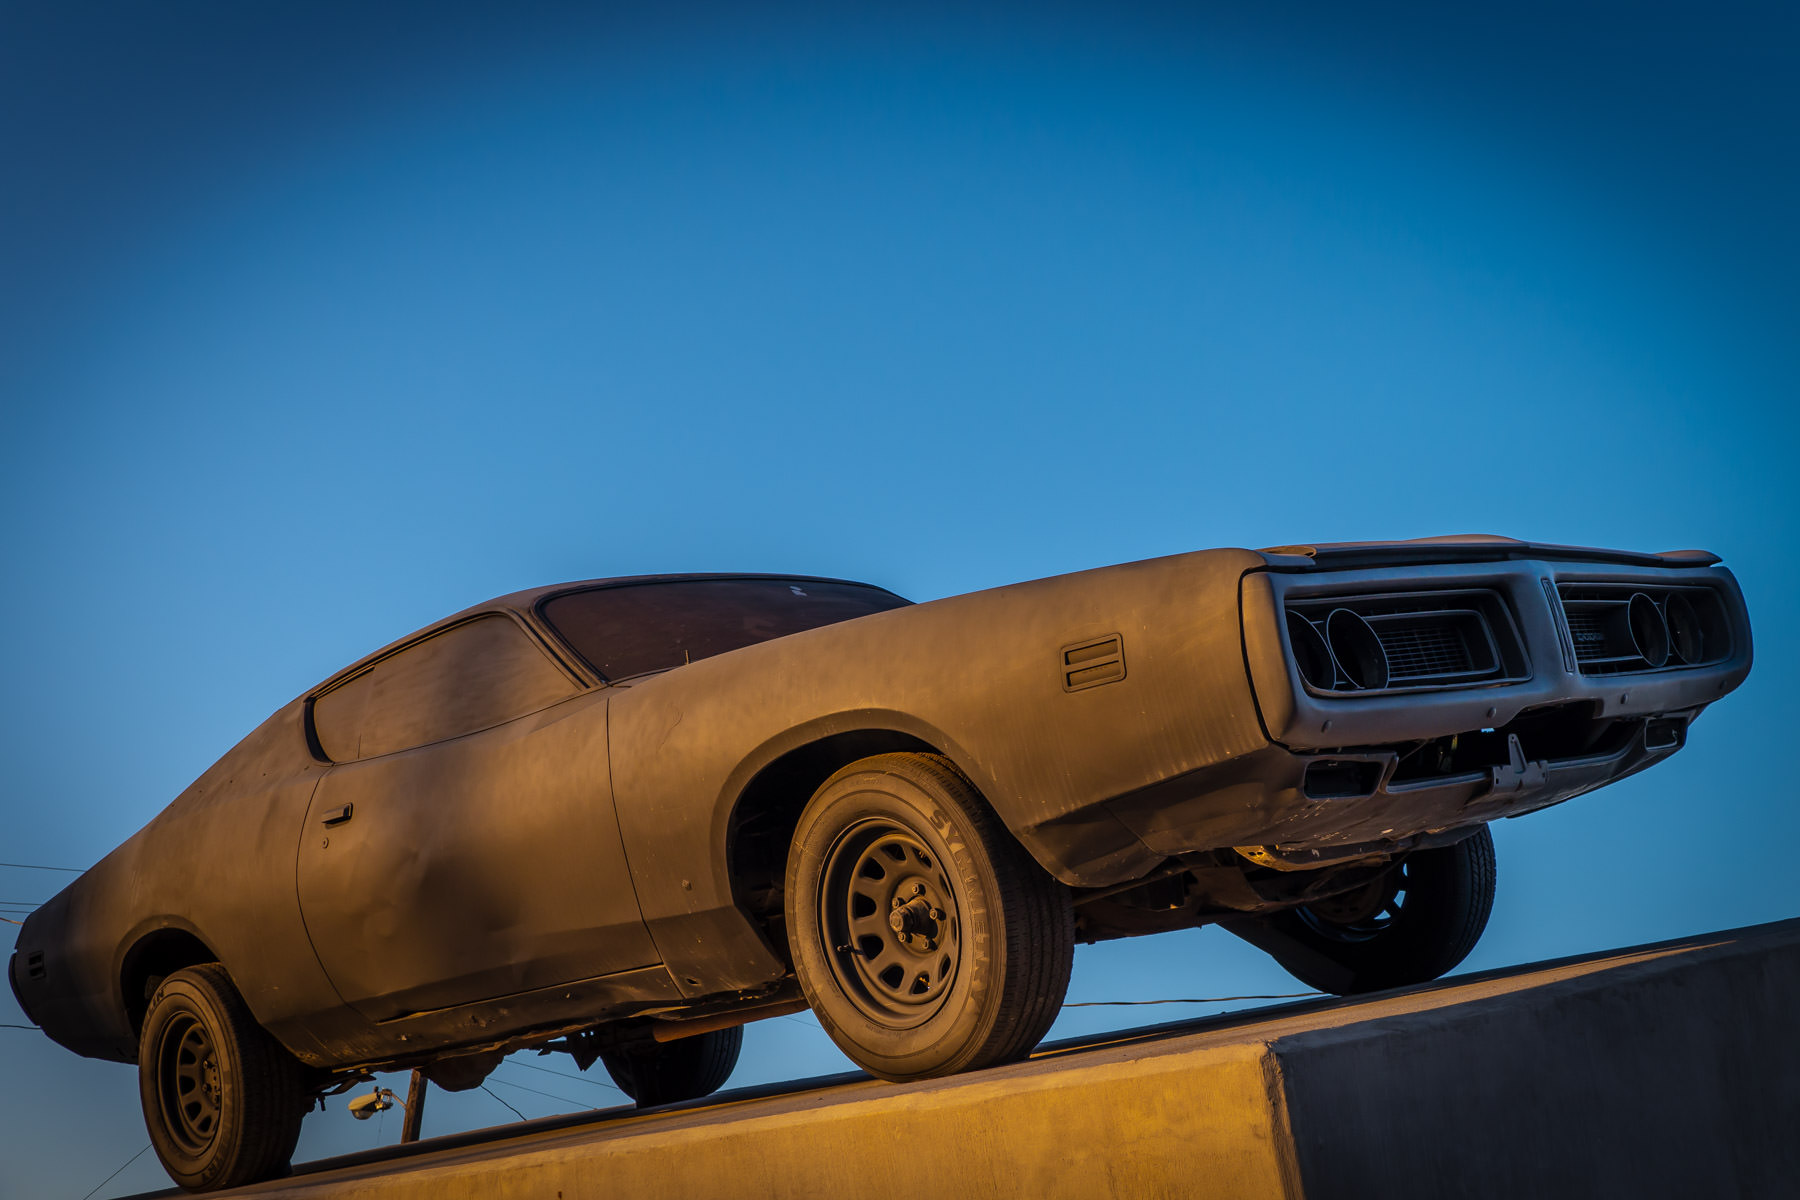 A matte-black 1972 Dodge Charger sits atop a canted concrete platform as part of sculpture Richard Phillips' collaboration with Playboy. Originally sited in Marfa, Texas, the sculpture now resides at the Dallas Contemporary.